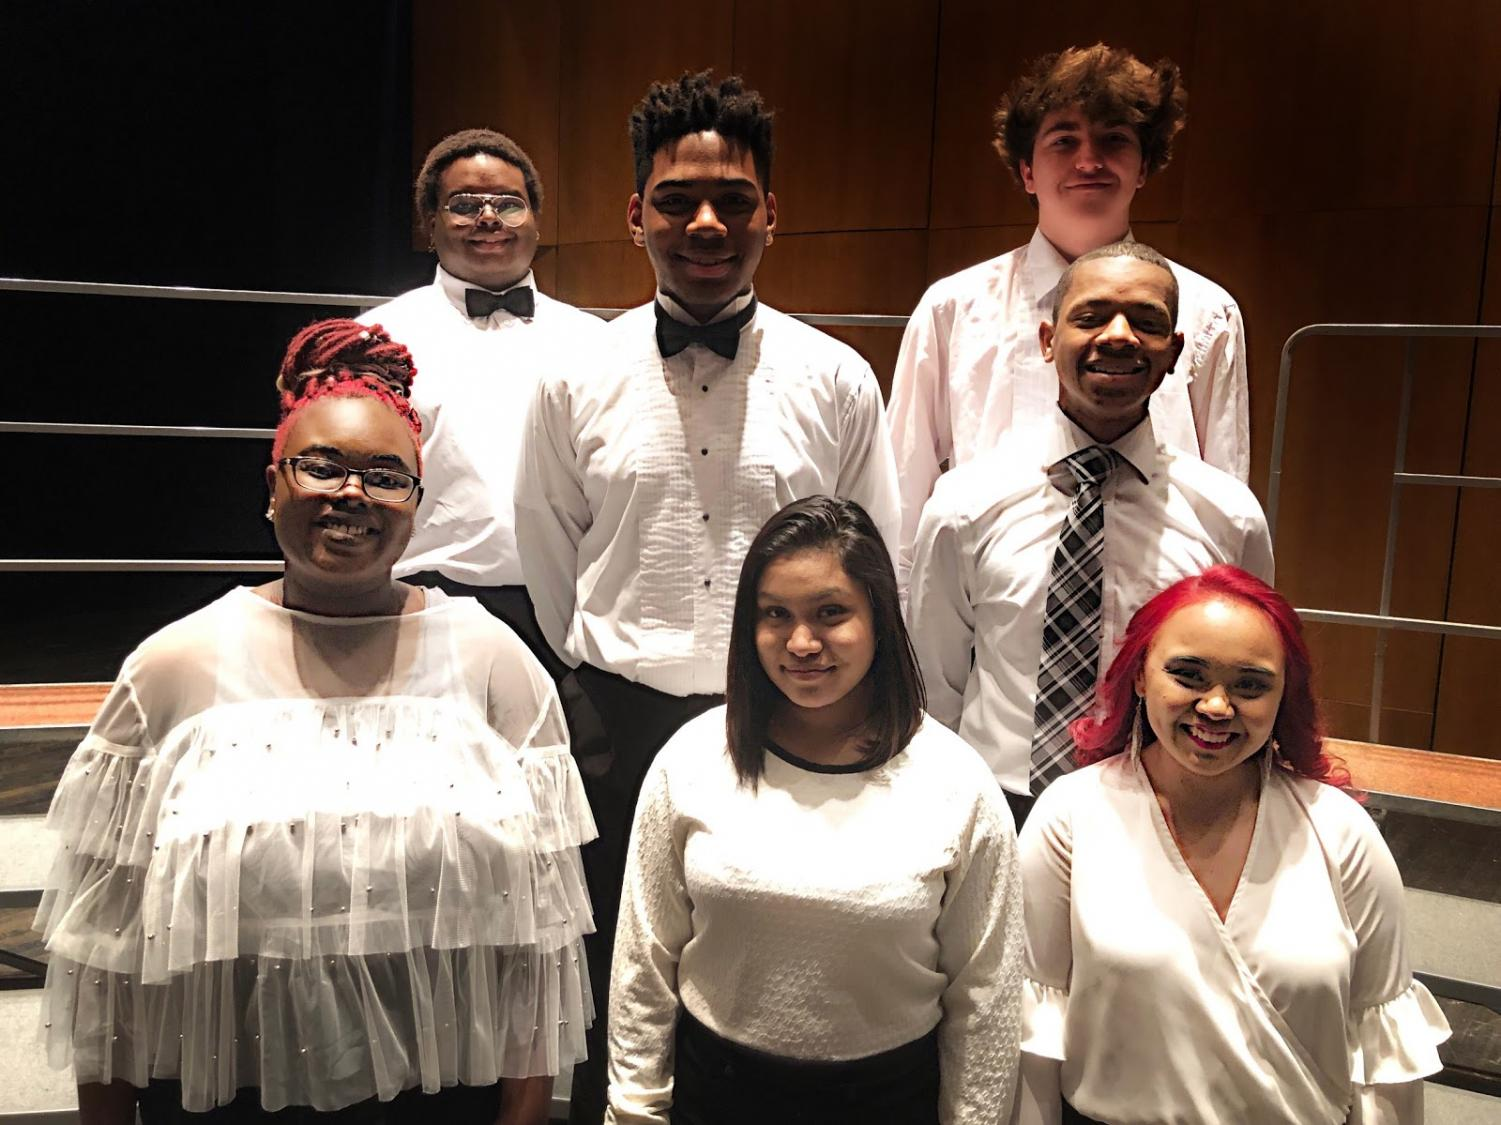 Choir Students participating in Des Lee Festival Back Left to Right; Max McVay, Erik Perkins, and Nathan Whinery. Front Left to Right; Yazmine Kibble, Dianna Godoy, and Daniela Scrima.